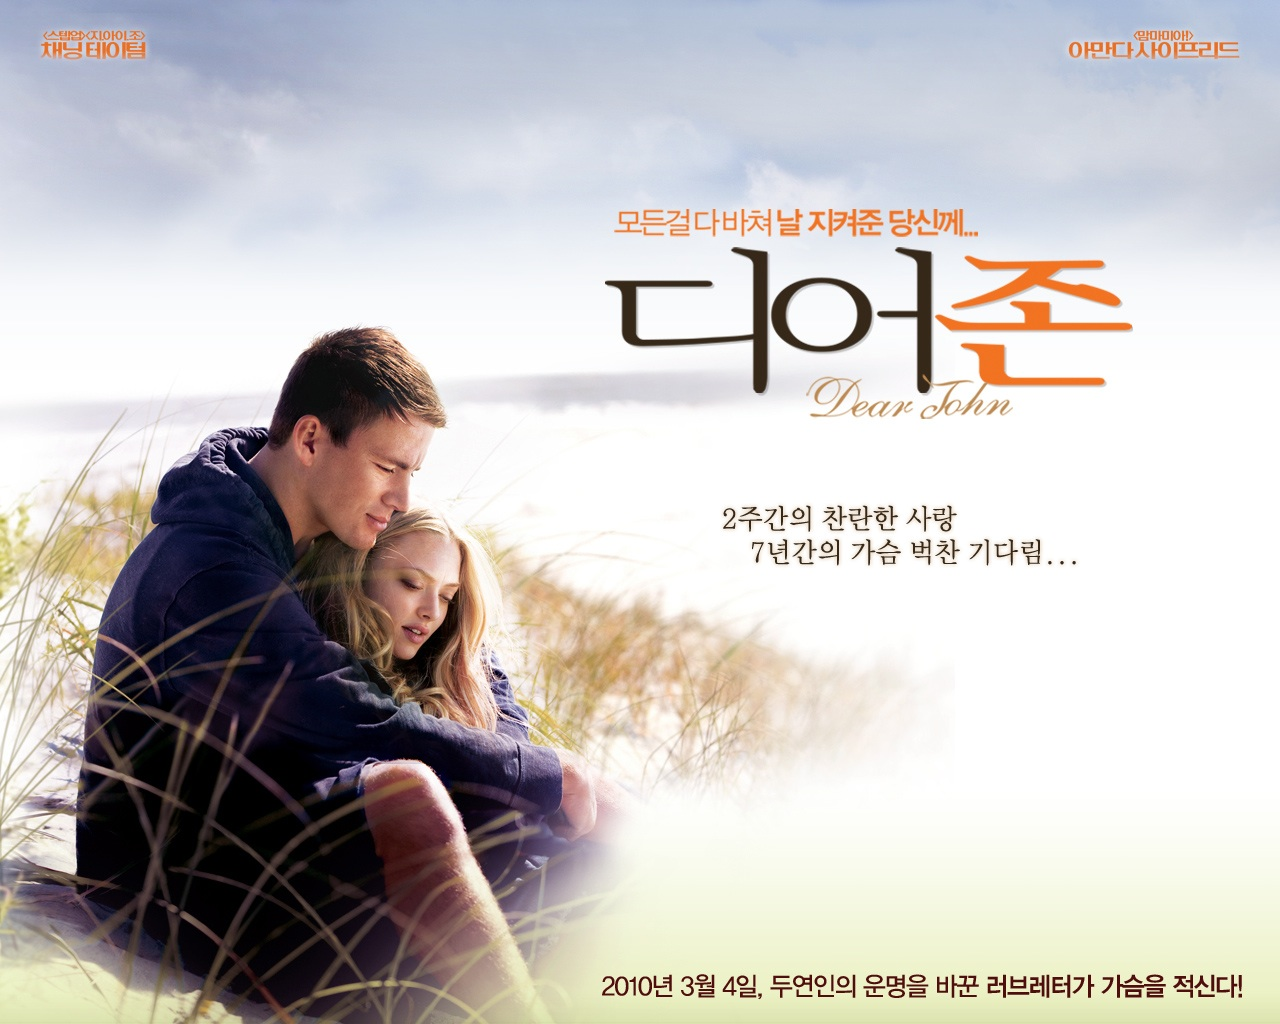 Channing Tatum and Amanda Seyfried in 'Dear John' Posters Korea